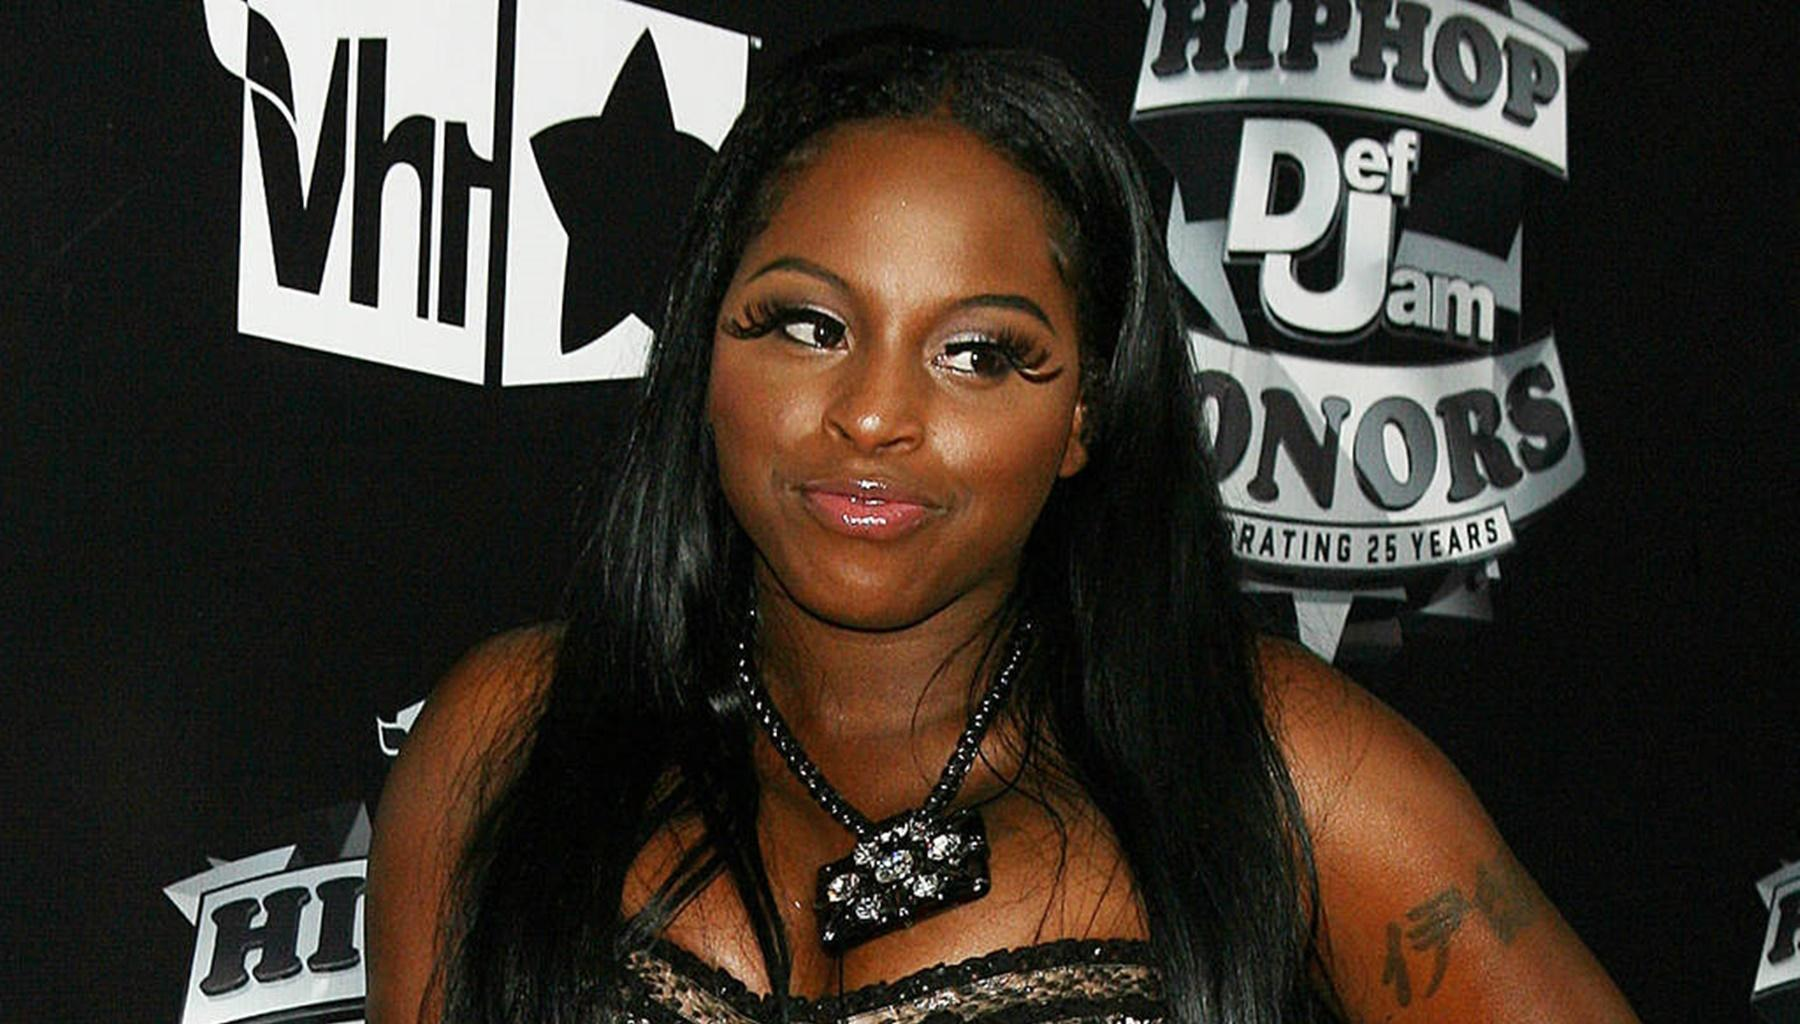 Kandi Burruss' Fans Chase Foxy Brown Who Is Legally Deaf Off Stage In Must-Watch Video -- They Wanted Lil Kim